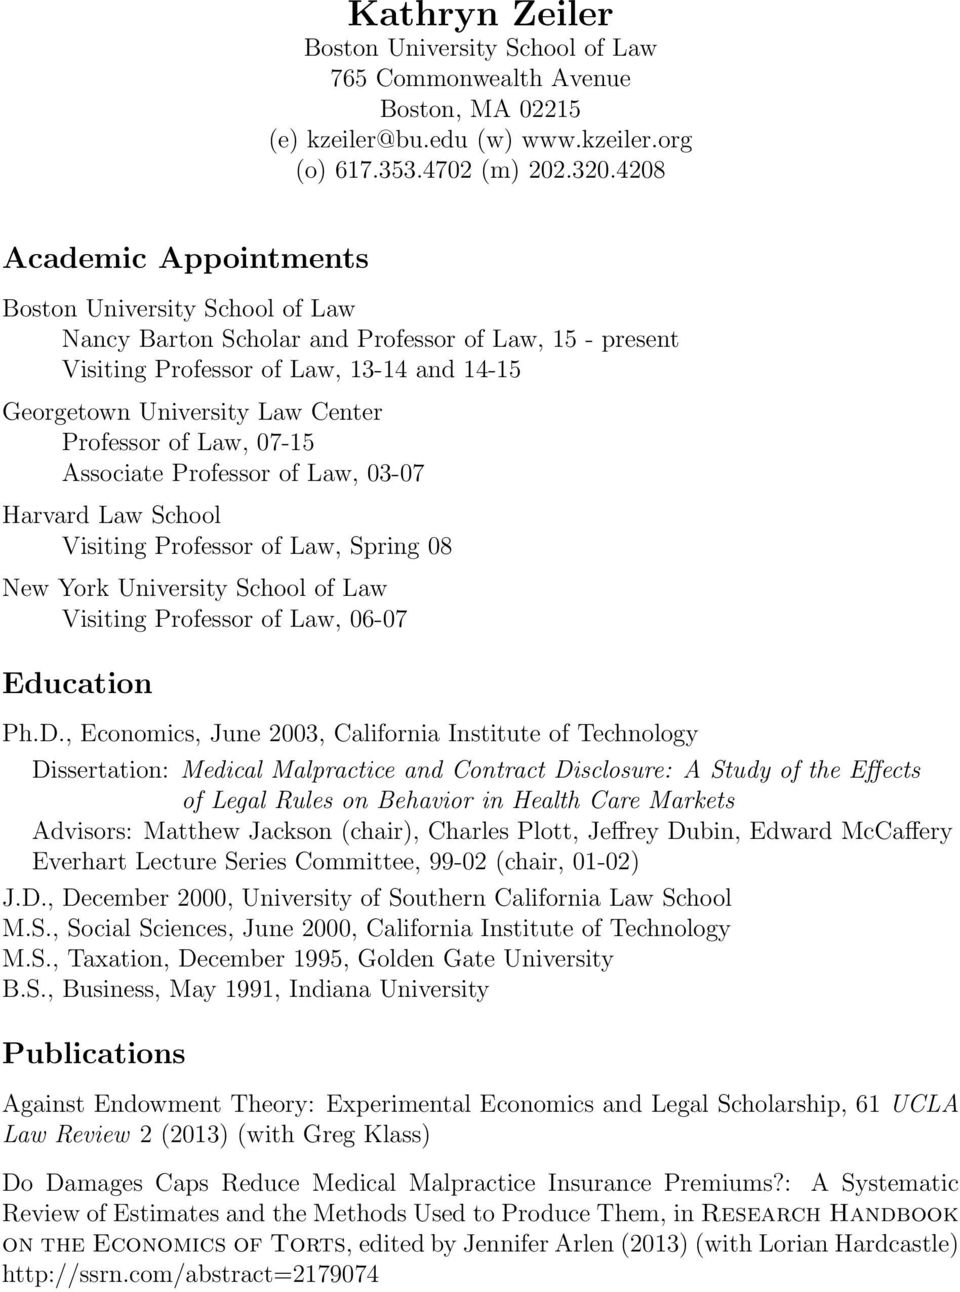 Professor of Law, 07-15 Associate Professor of Law, 03-07 Harvard Law School Visiting Professor of Law, Spring 08 New York University School of Law Visiting Professor of Law, 06-07 Education Ph.D.